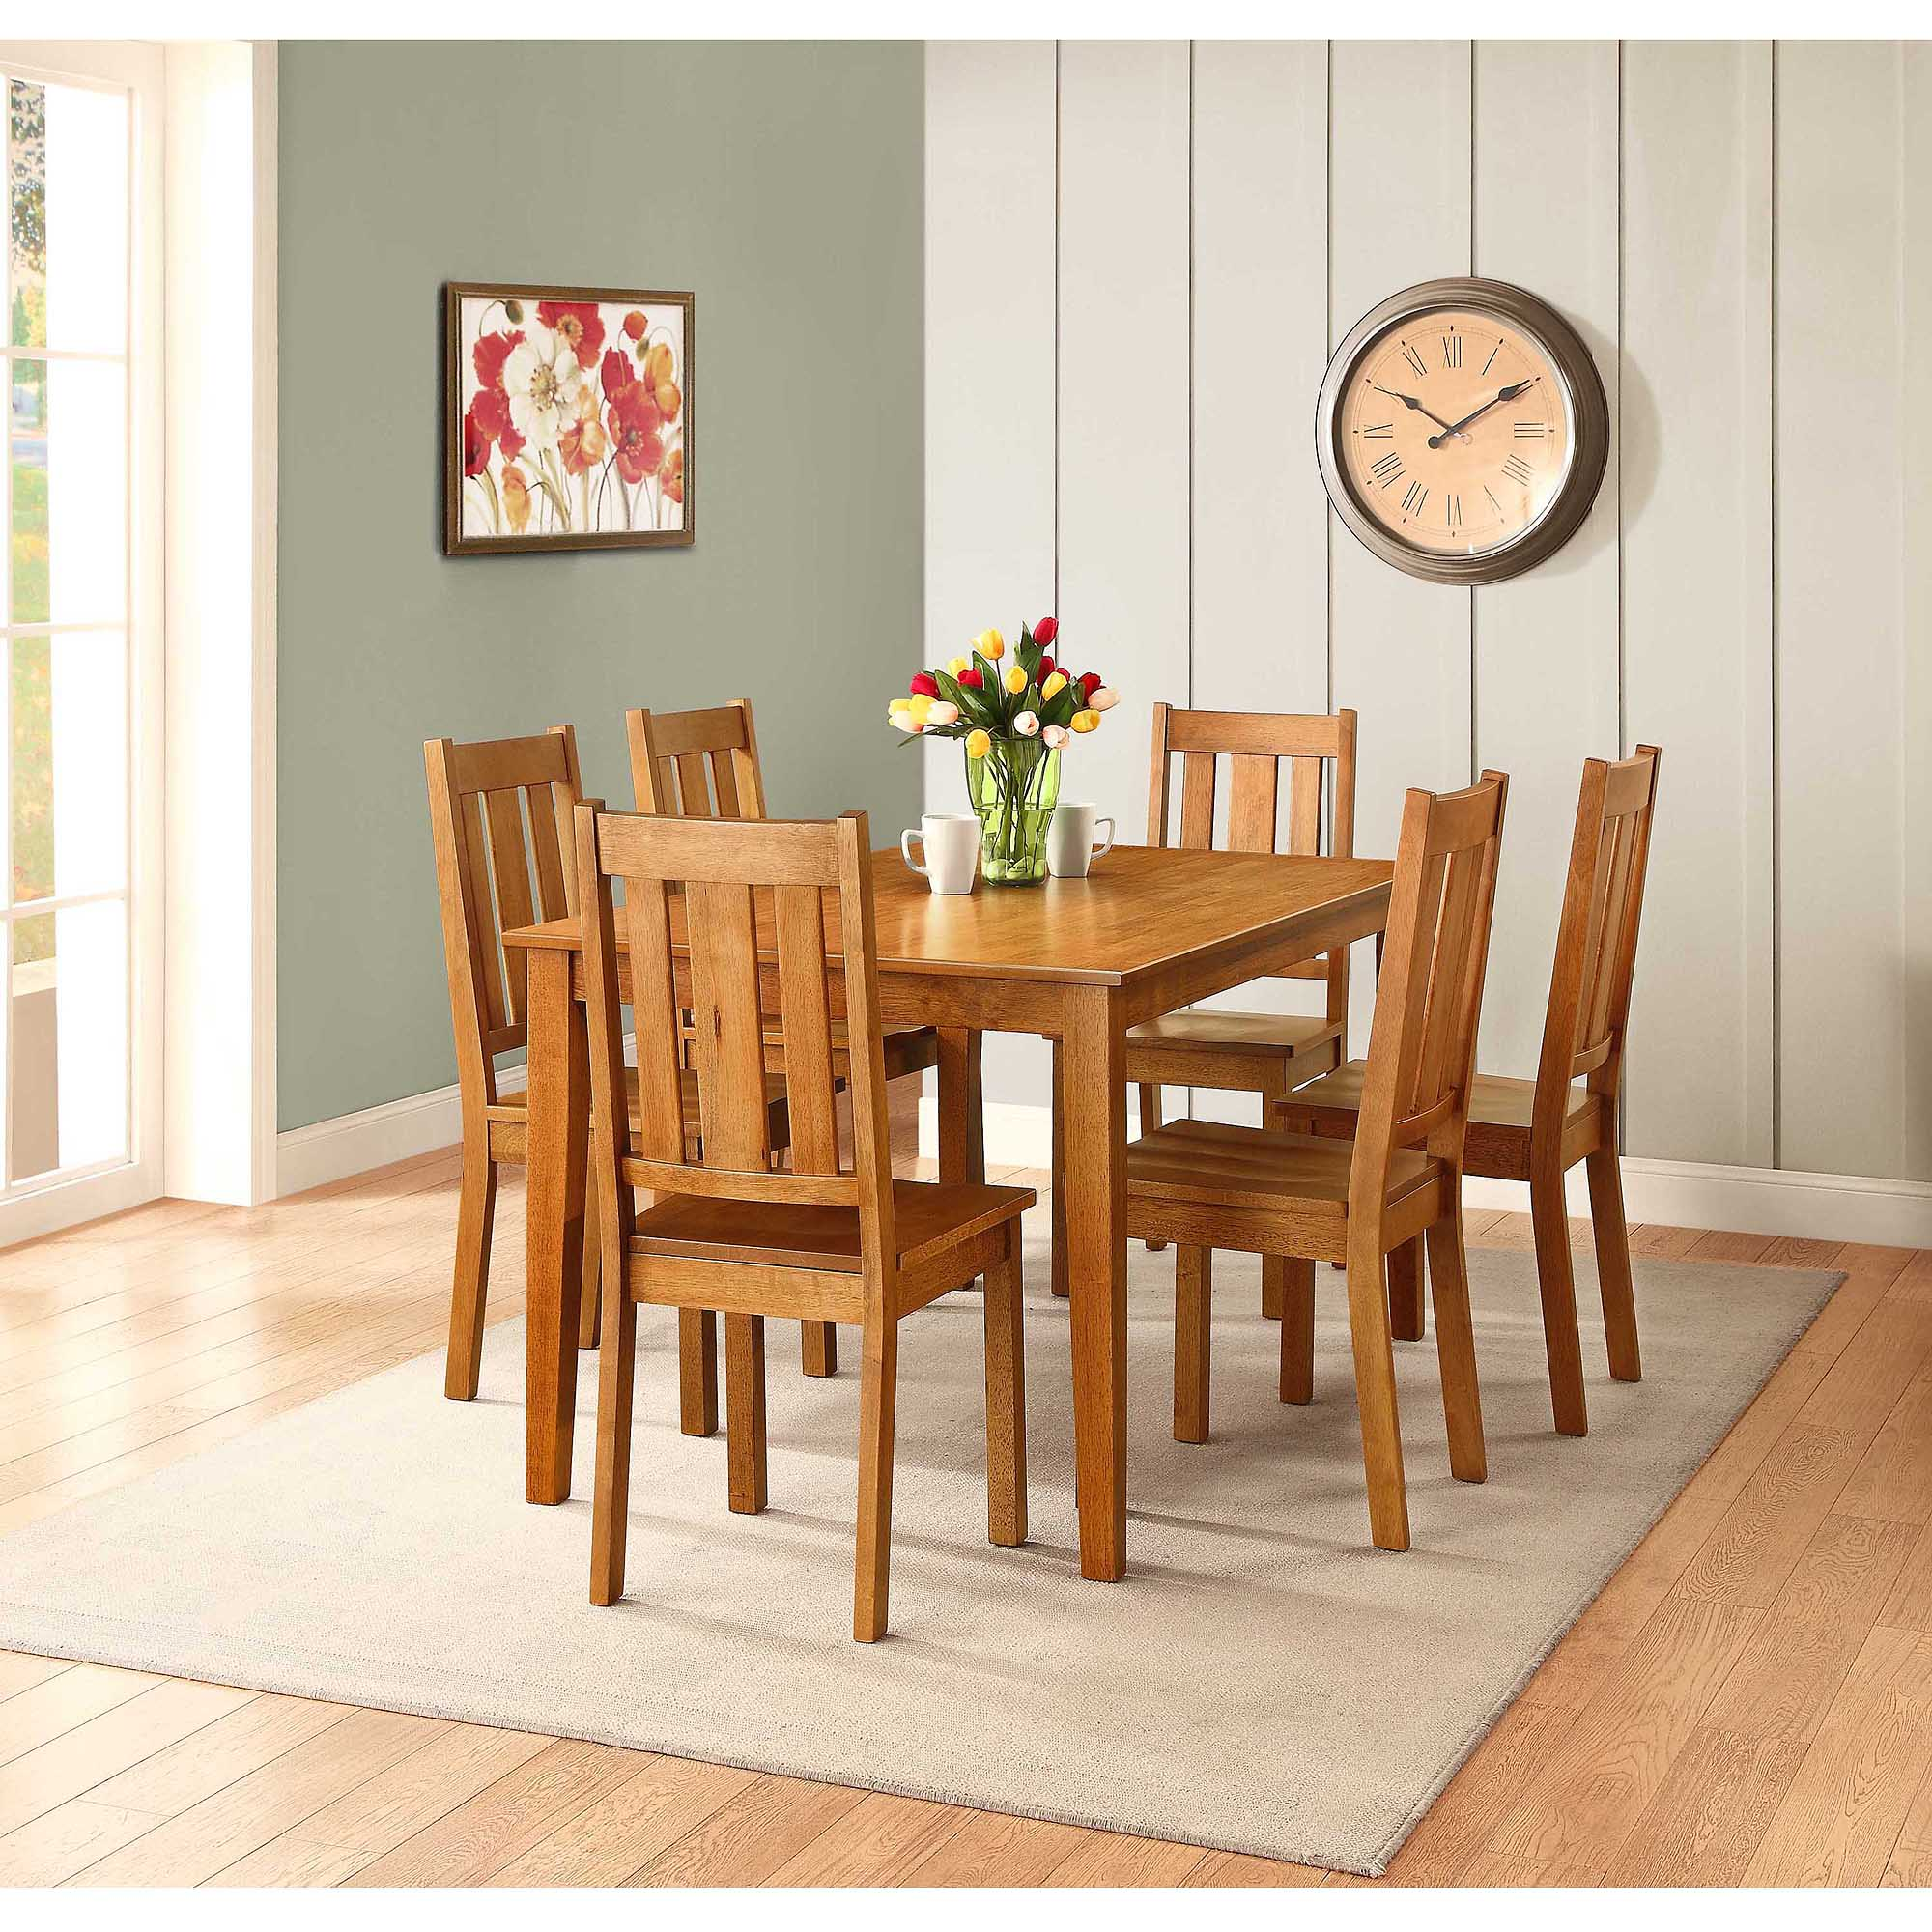 Better Homes and Gardens Bankston Dining Table Honey Walmartcom